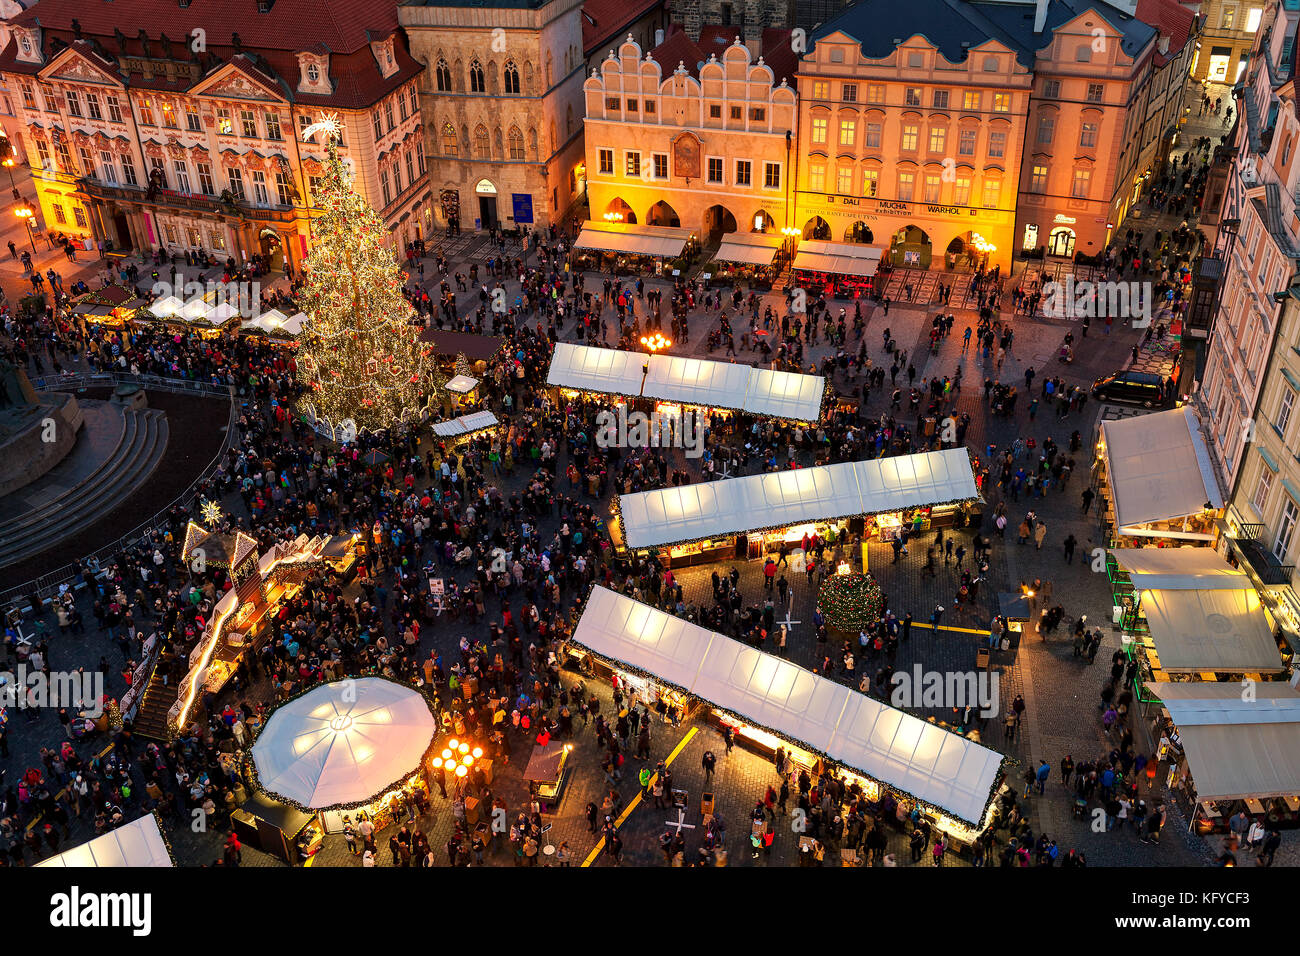 PRAGUE, CZECH REPUBLIC - DECEMBER 11, 2016: View from above on famous traditional Christmas market at Old Town Square. - Stock Image